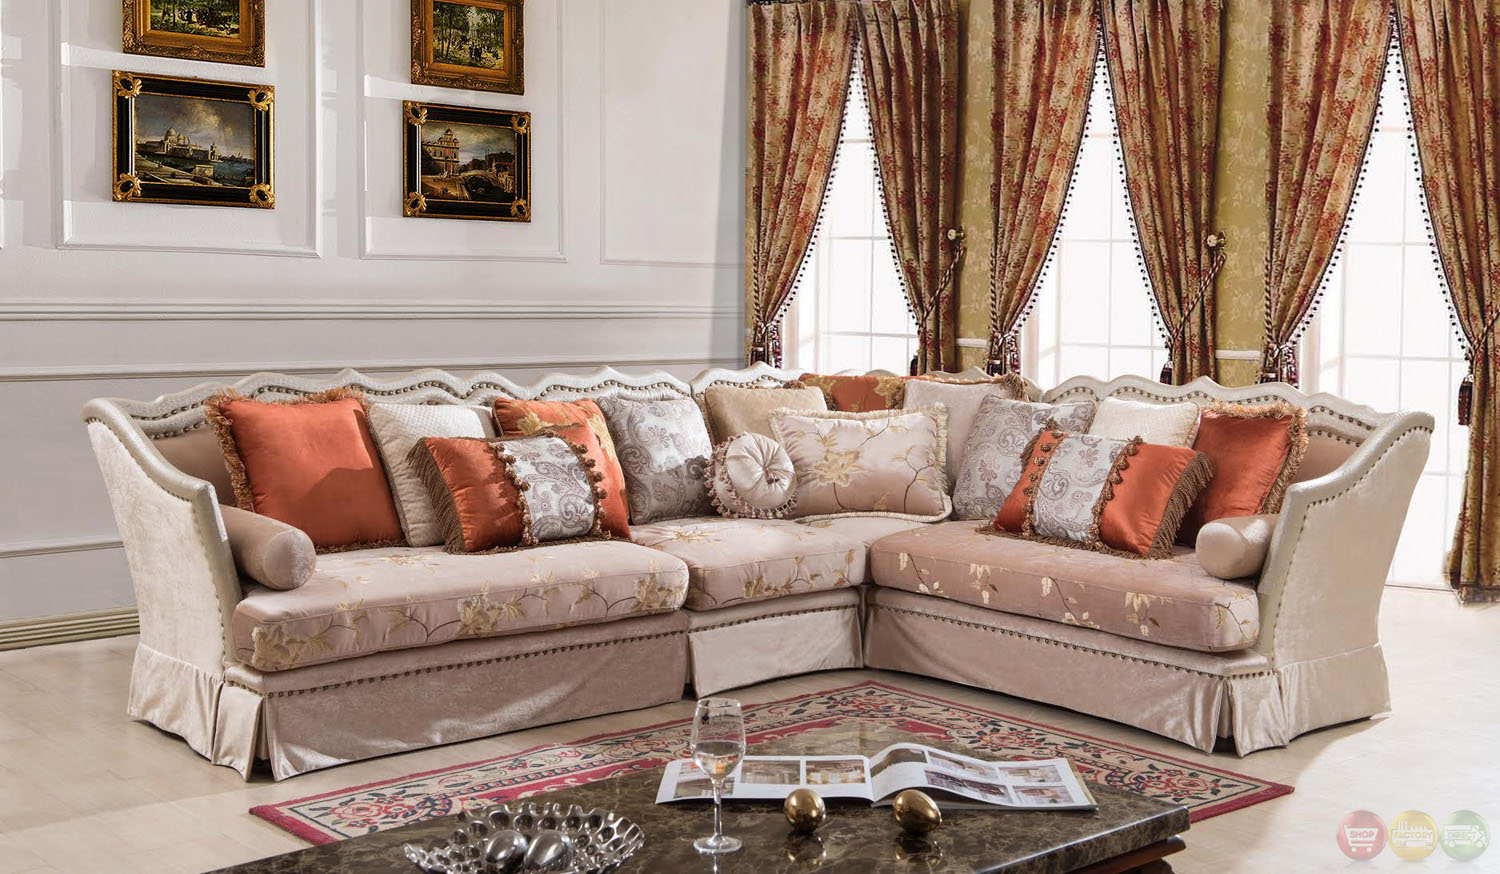 Champagne formal antique style traditional living room furniture sectional sofa - Living room furniture traditional ...